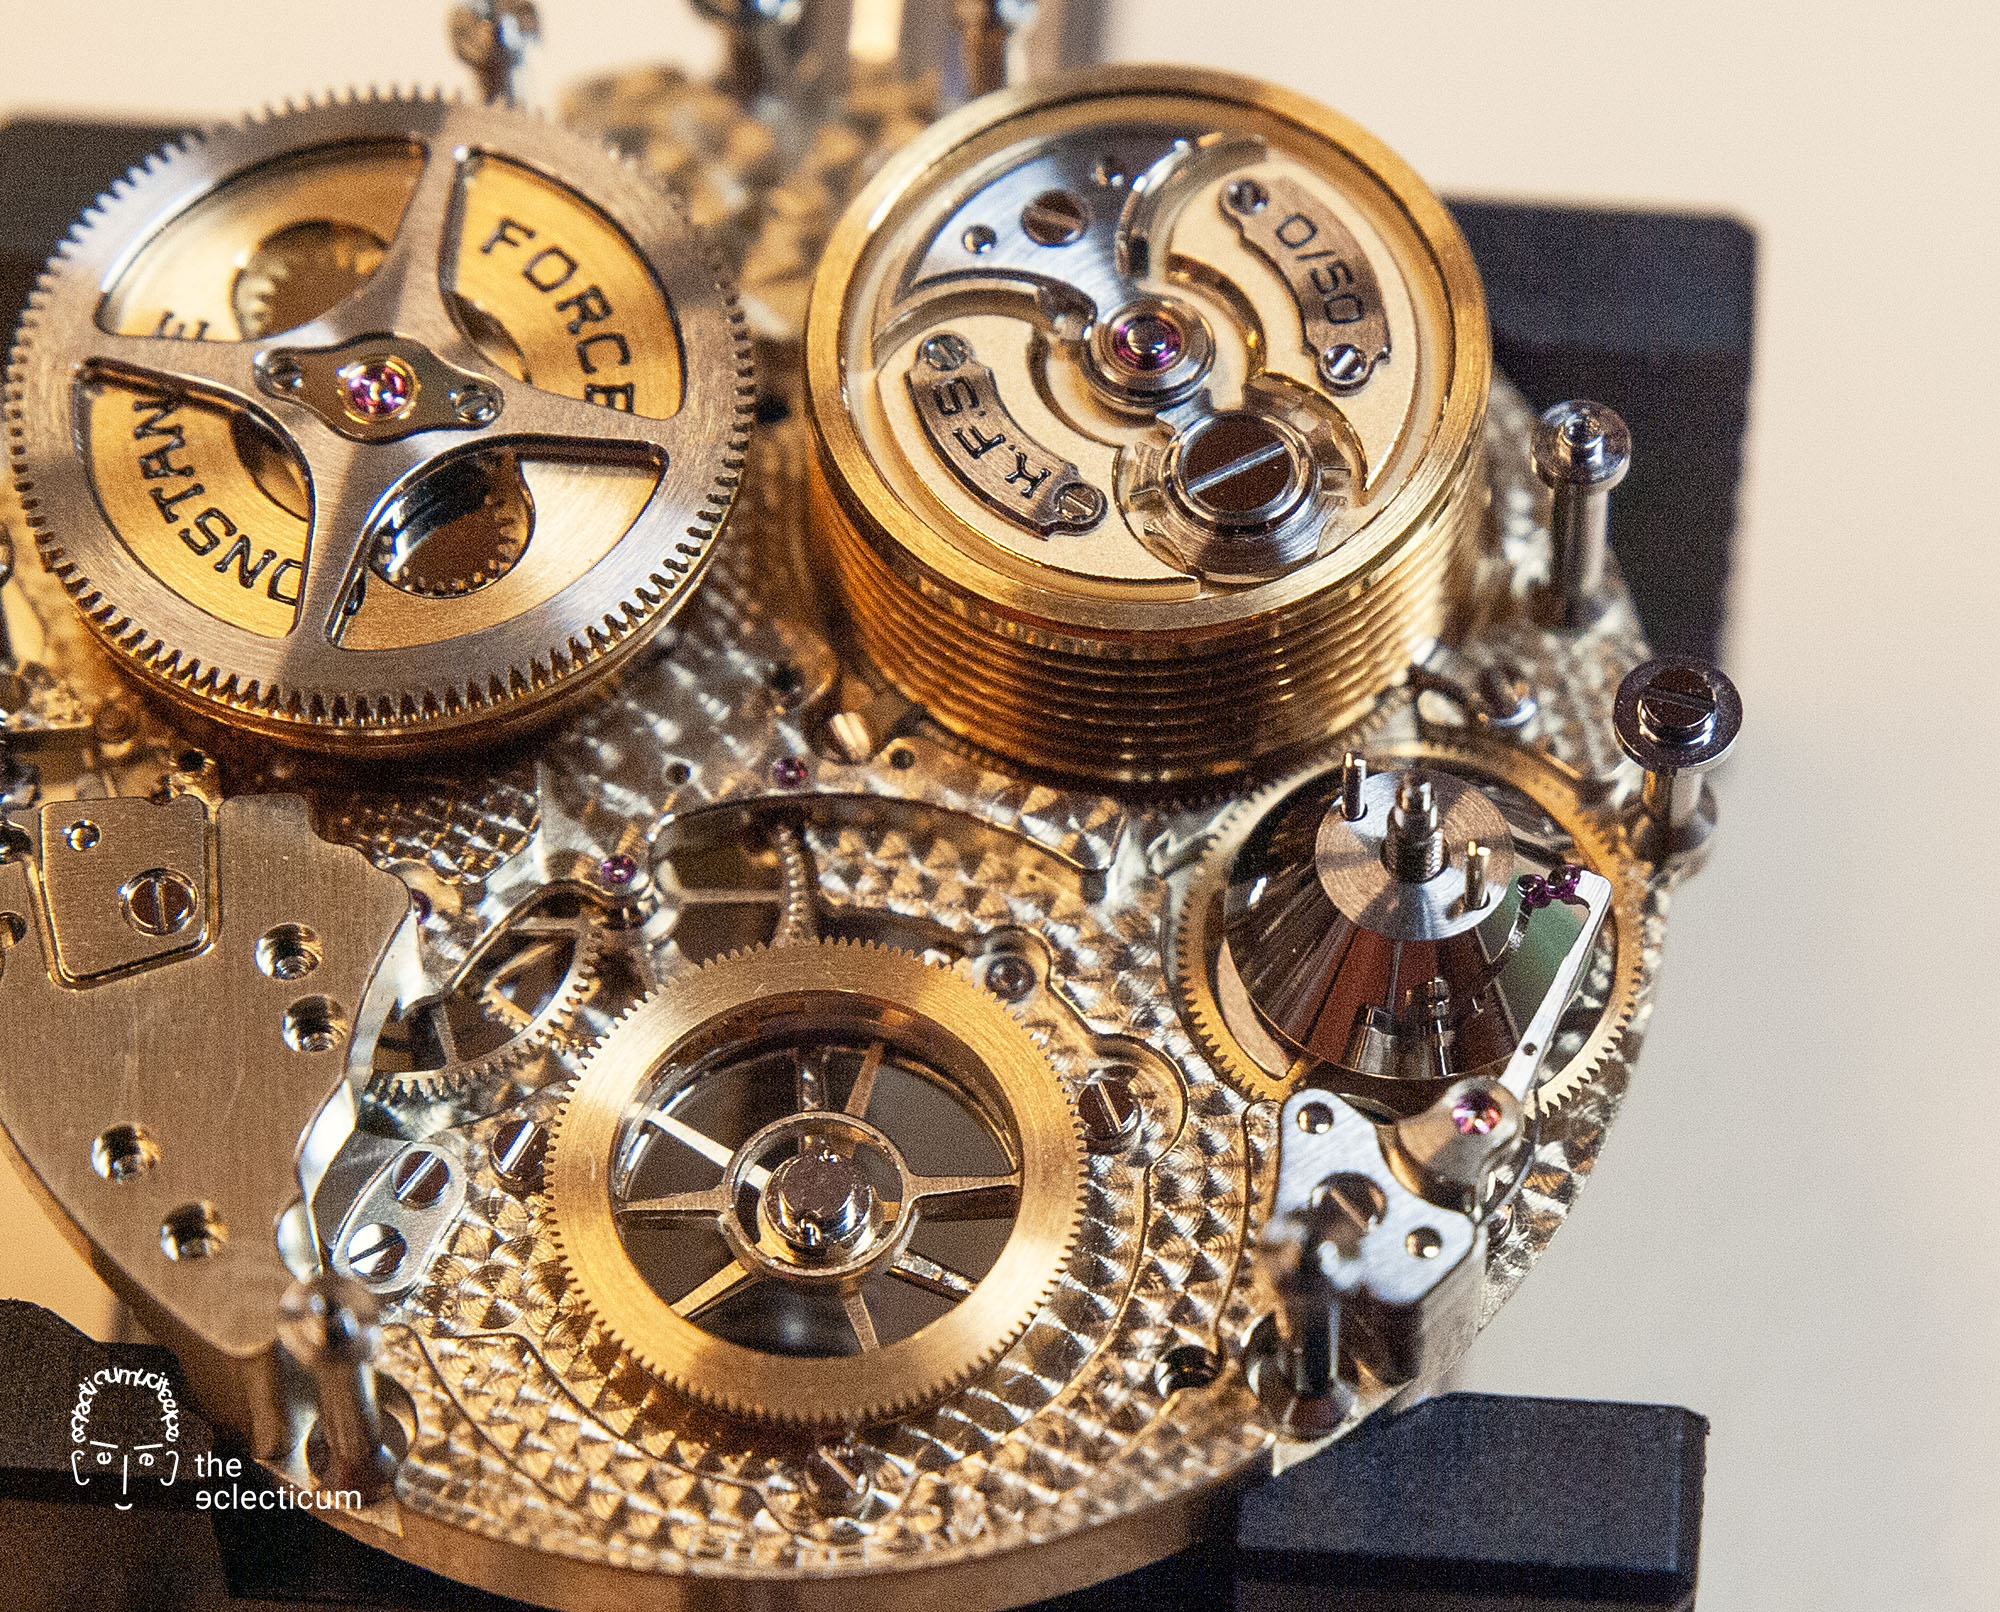 Ferdinand Berthoud Chronometry FB 1R 1L 1 chronometer tourbillon assembly watchmaking movement power reserve